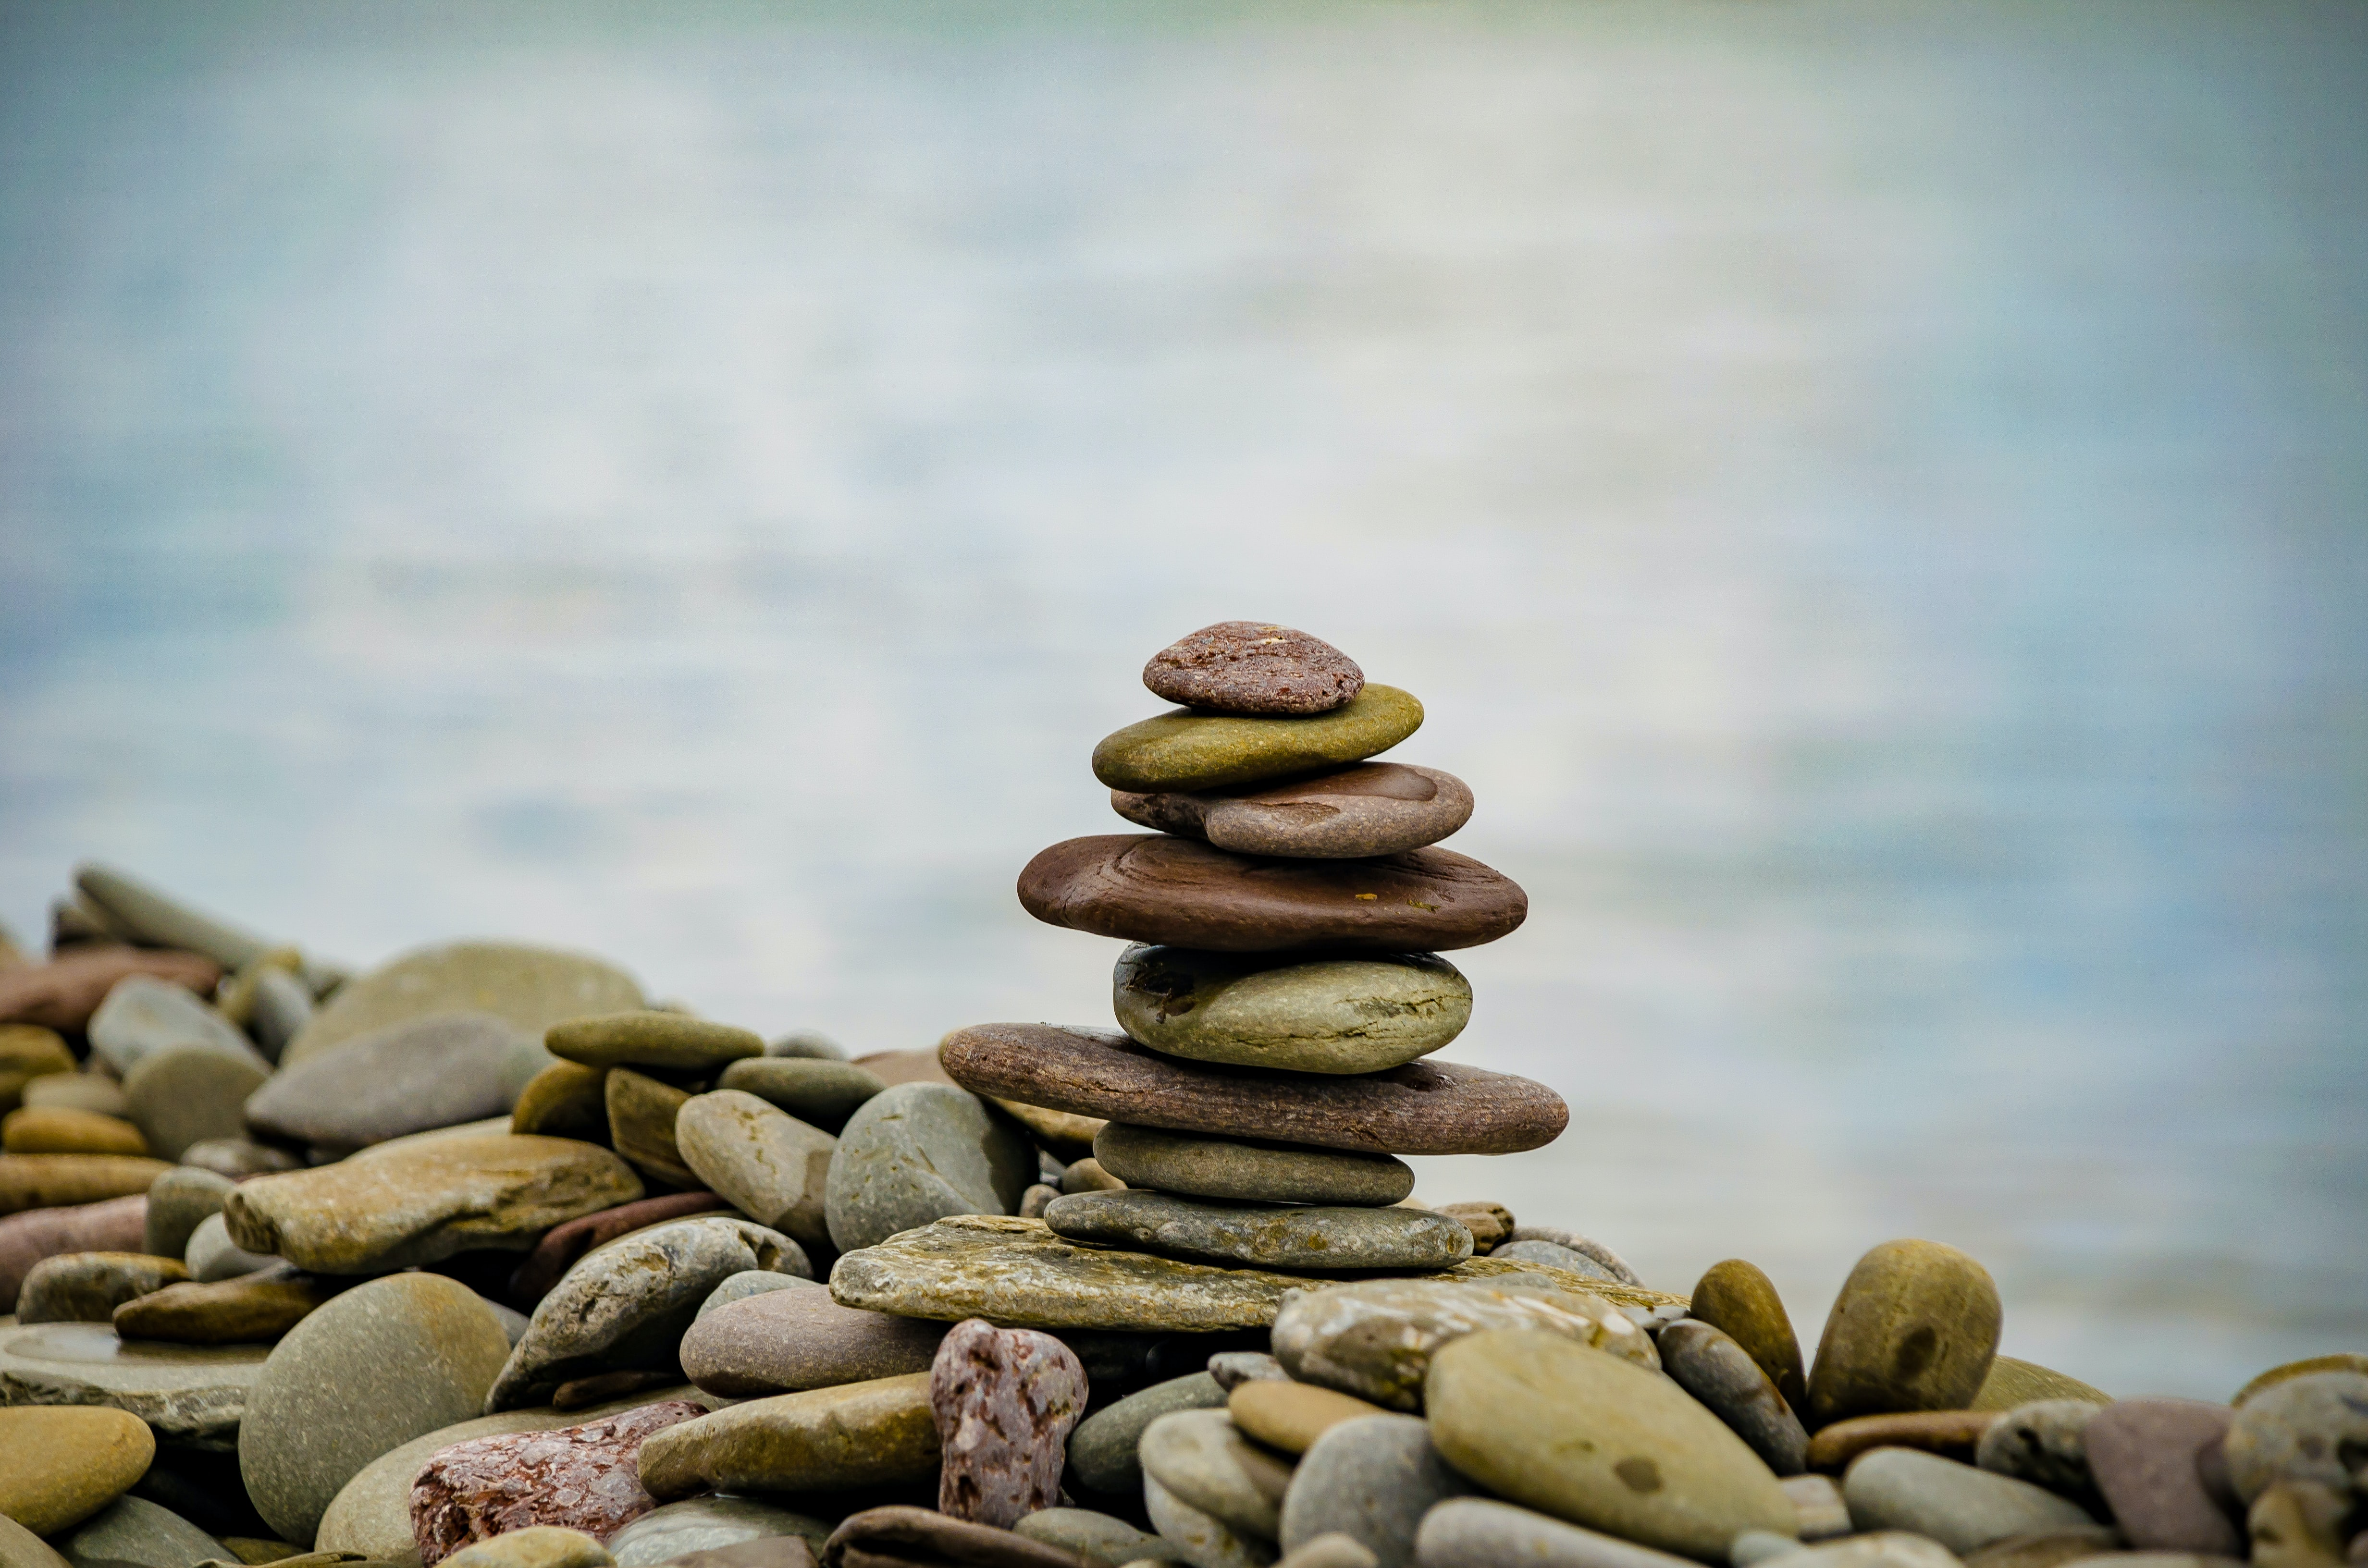 rocks stacked and balanced on beach